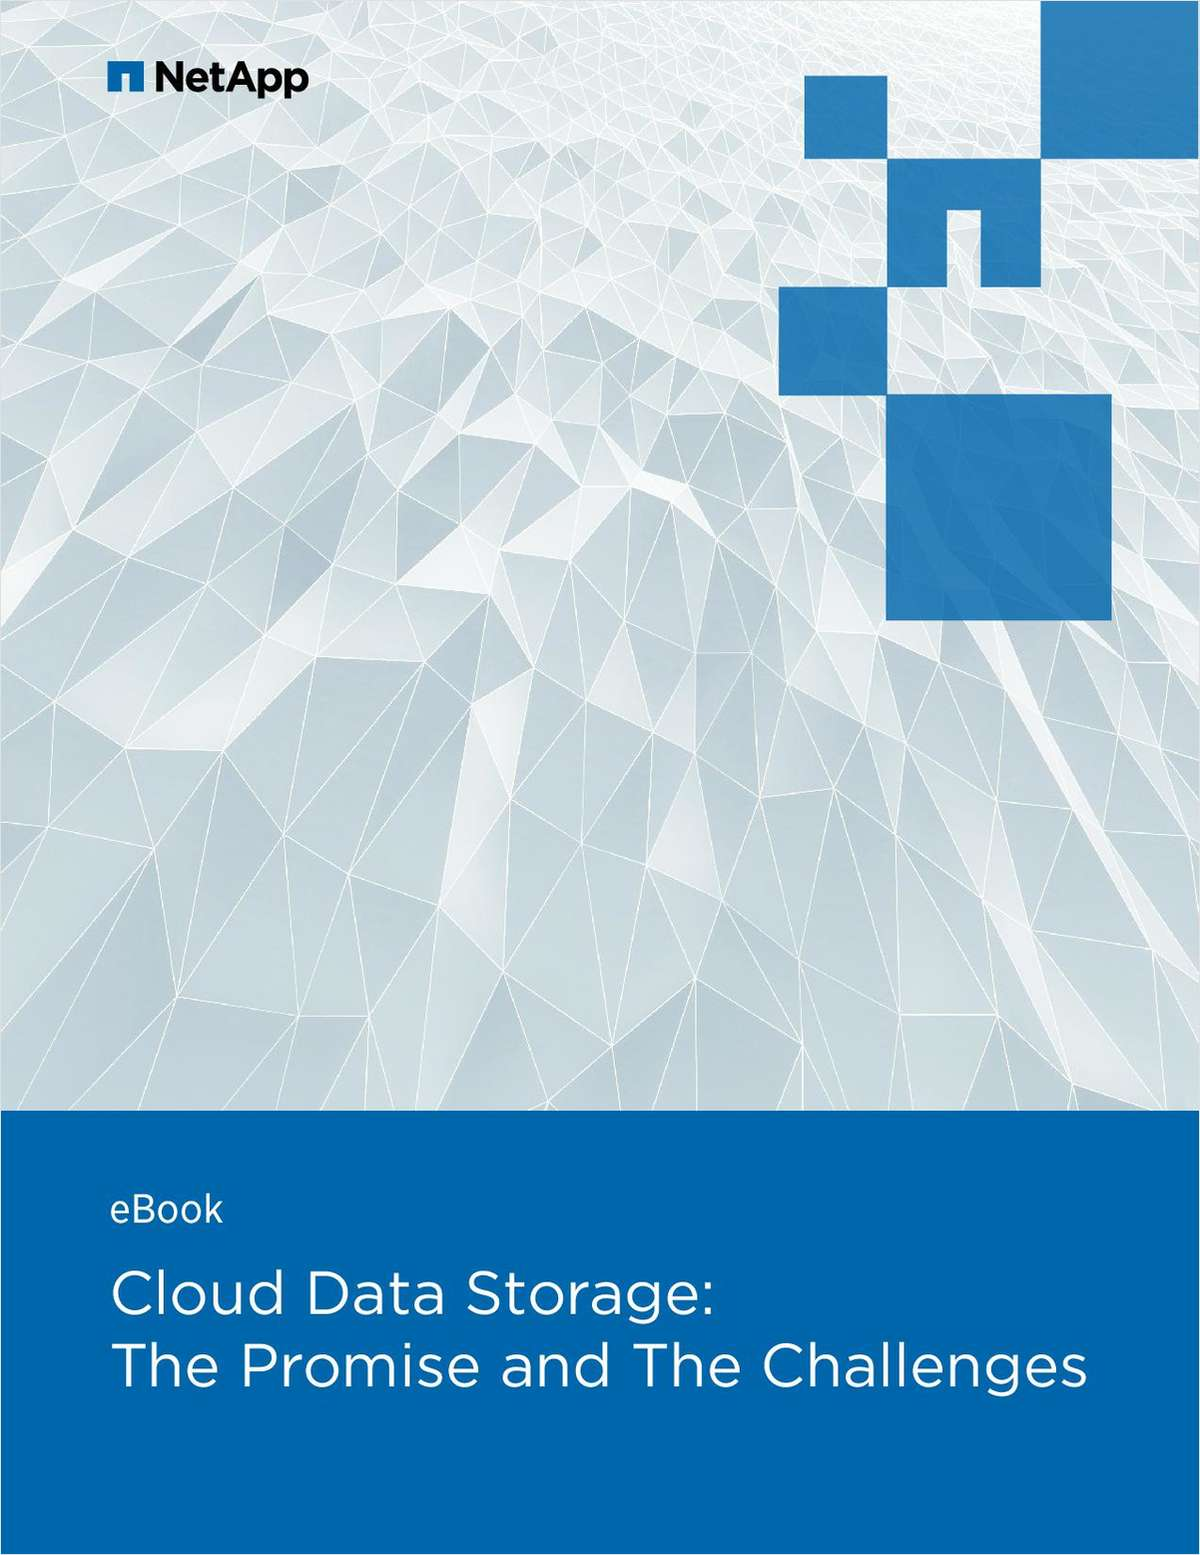 Cloud Data Storage:The Promise and The Challenges